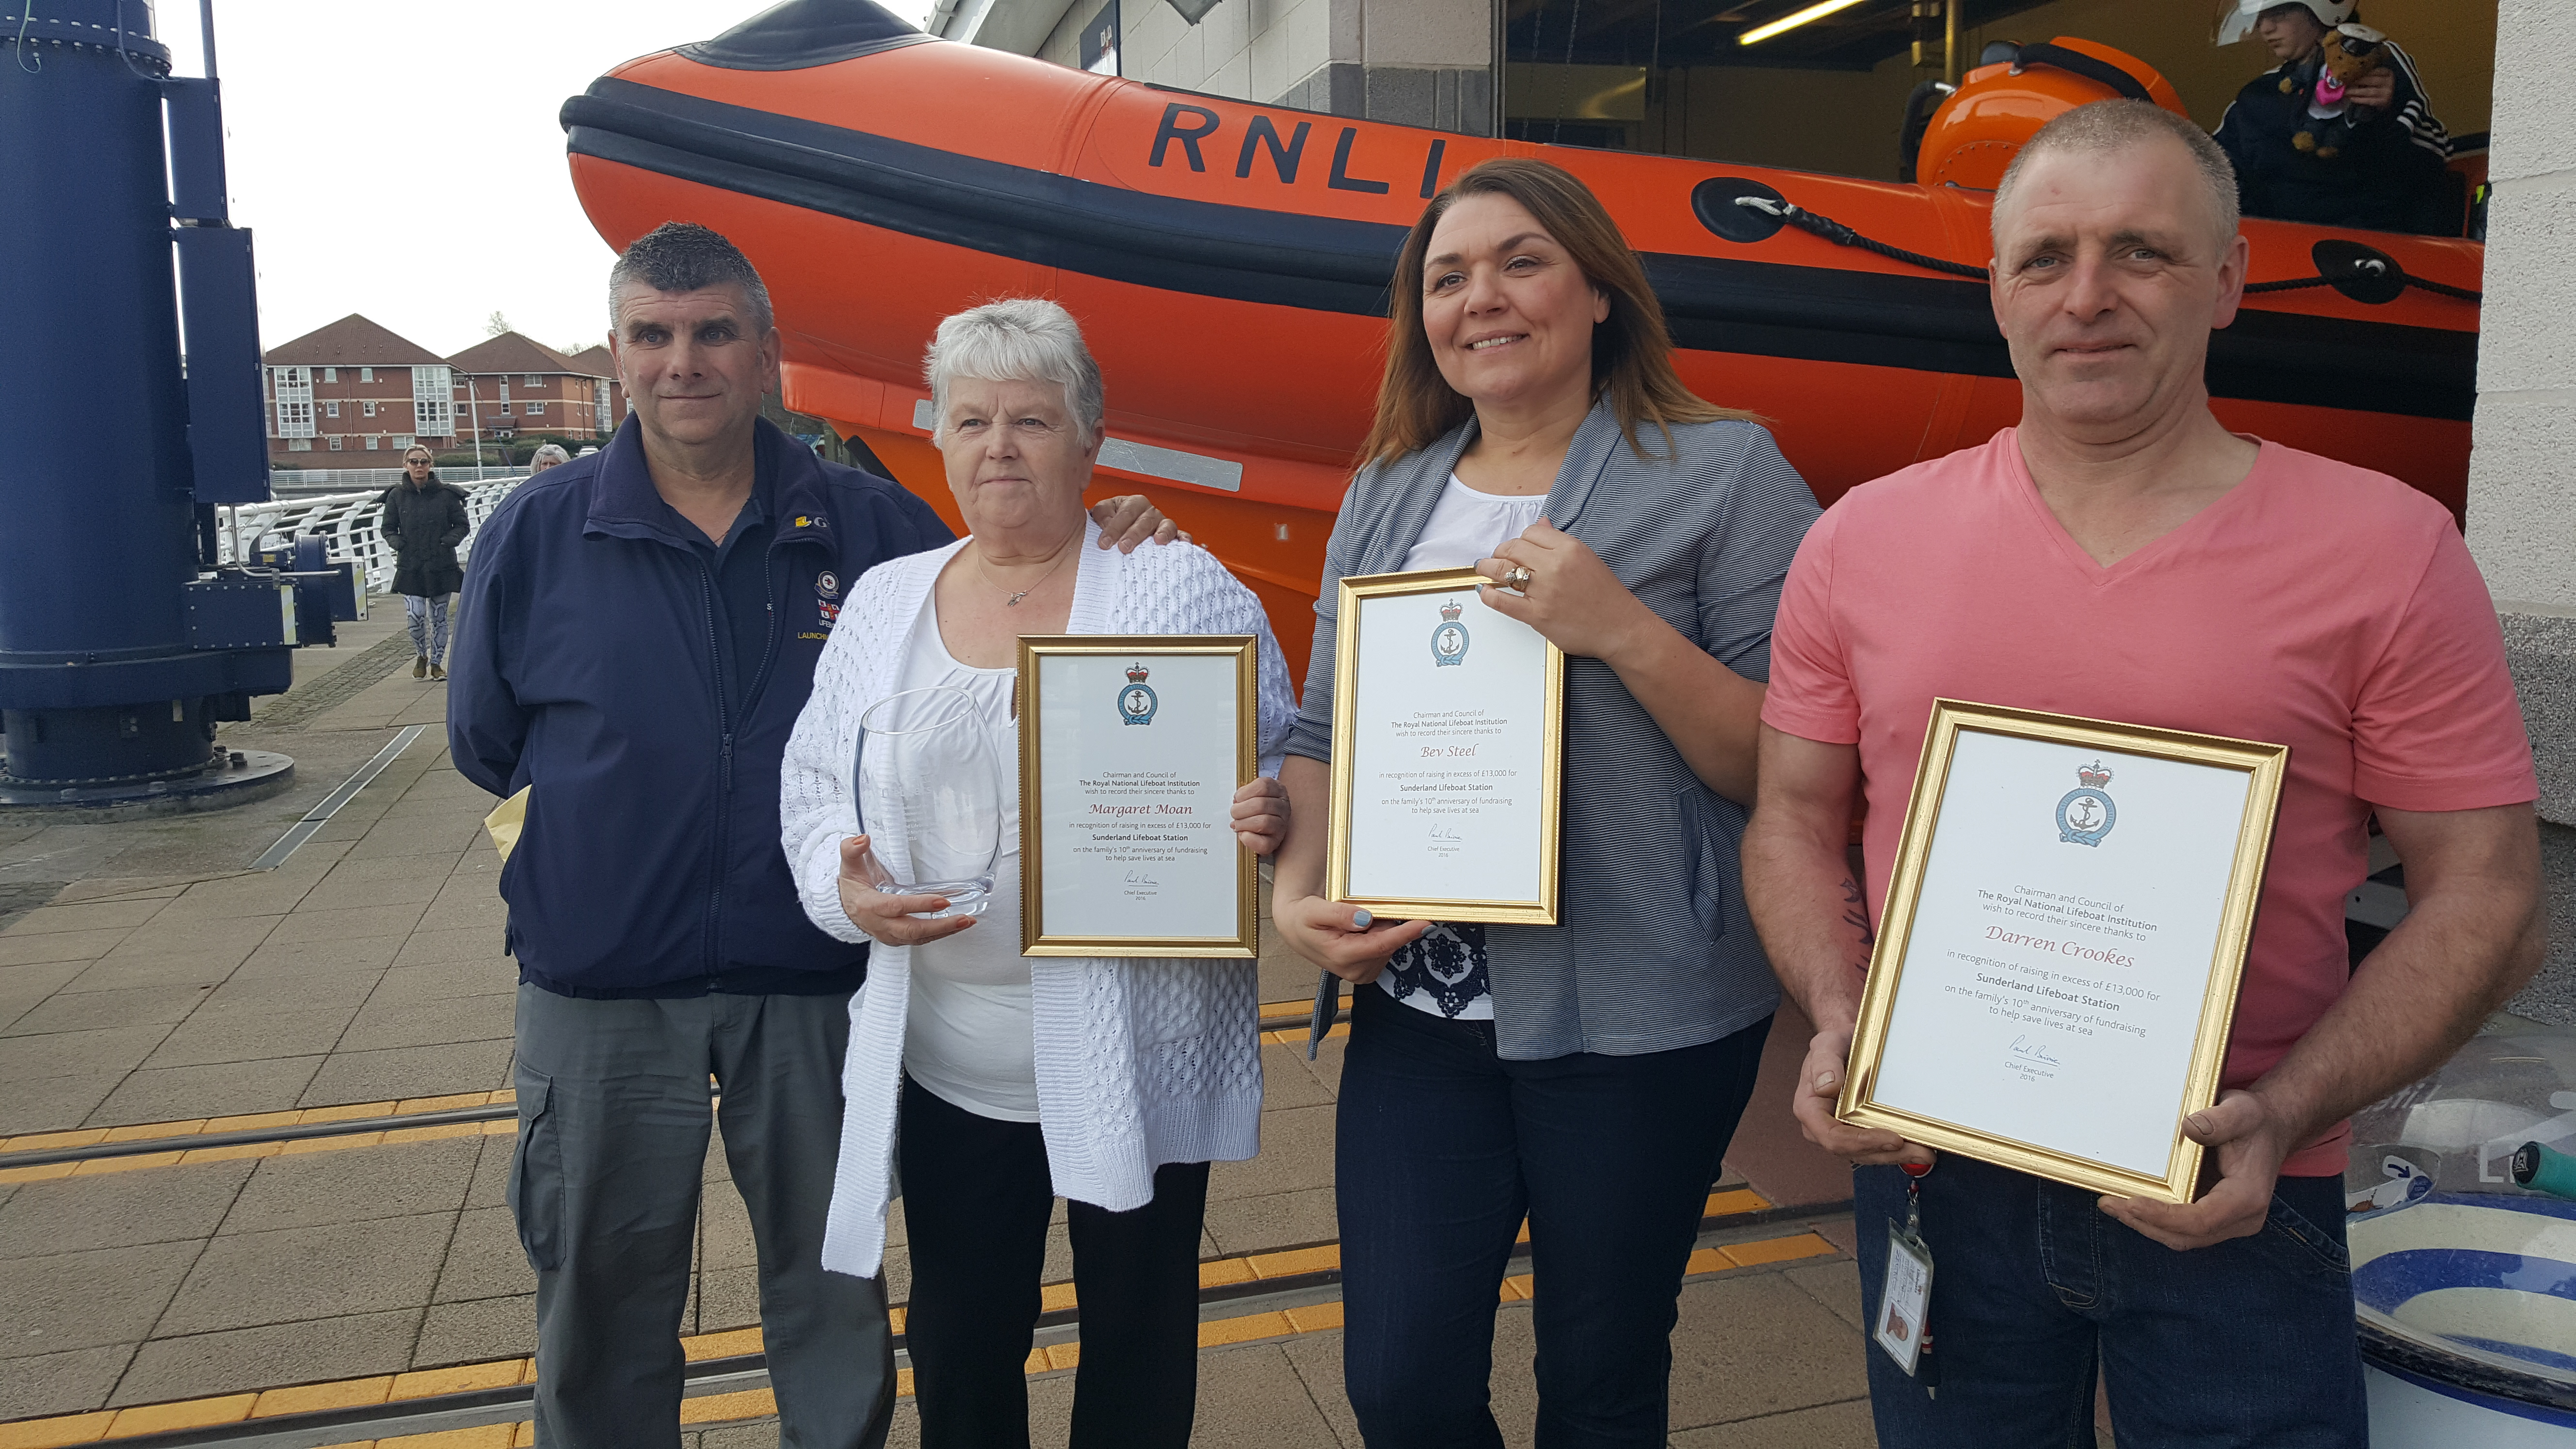 Sunderland RNLI Operations Manager with fundraisers Margaret Moan, Bev Steel, and Darren Crookes